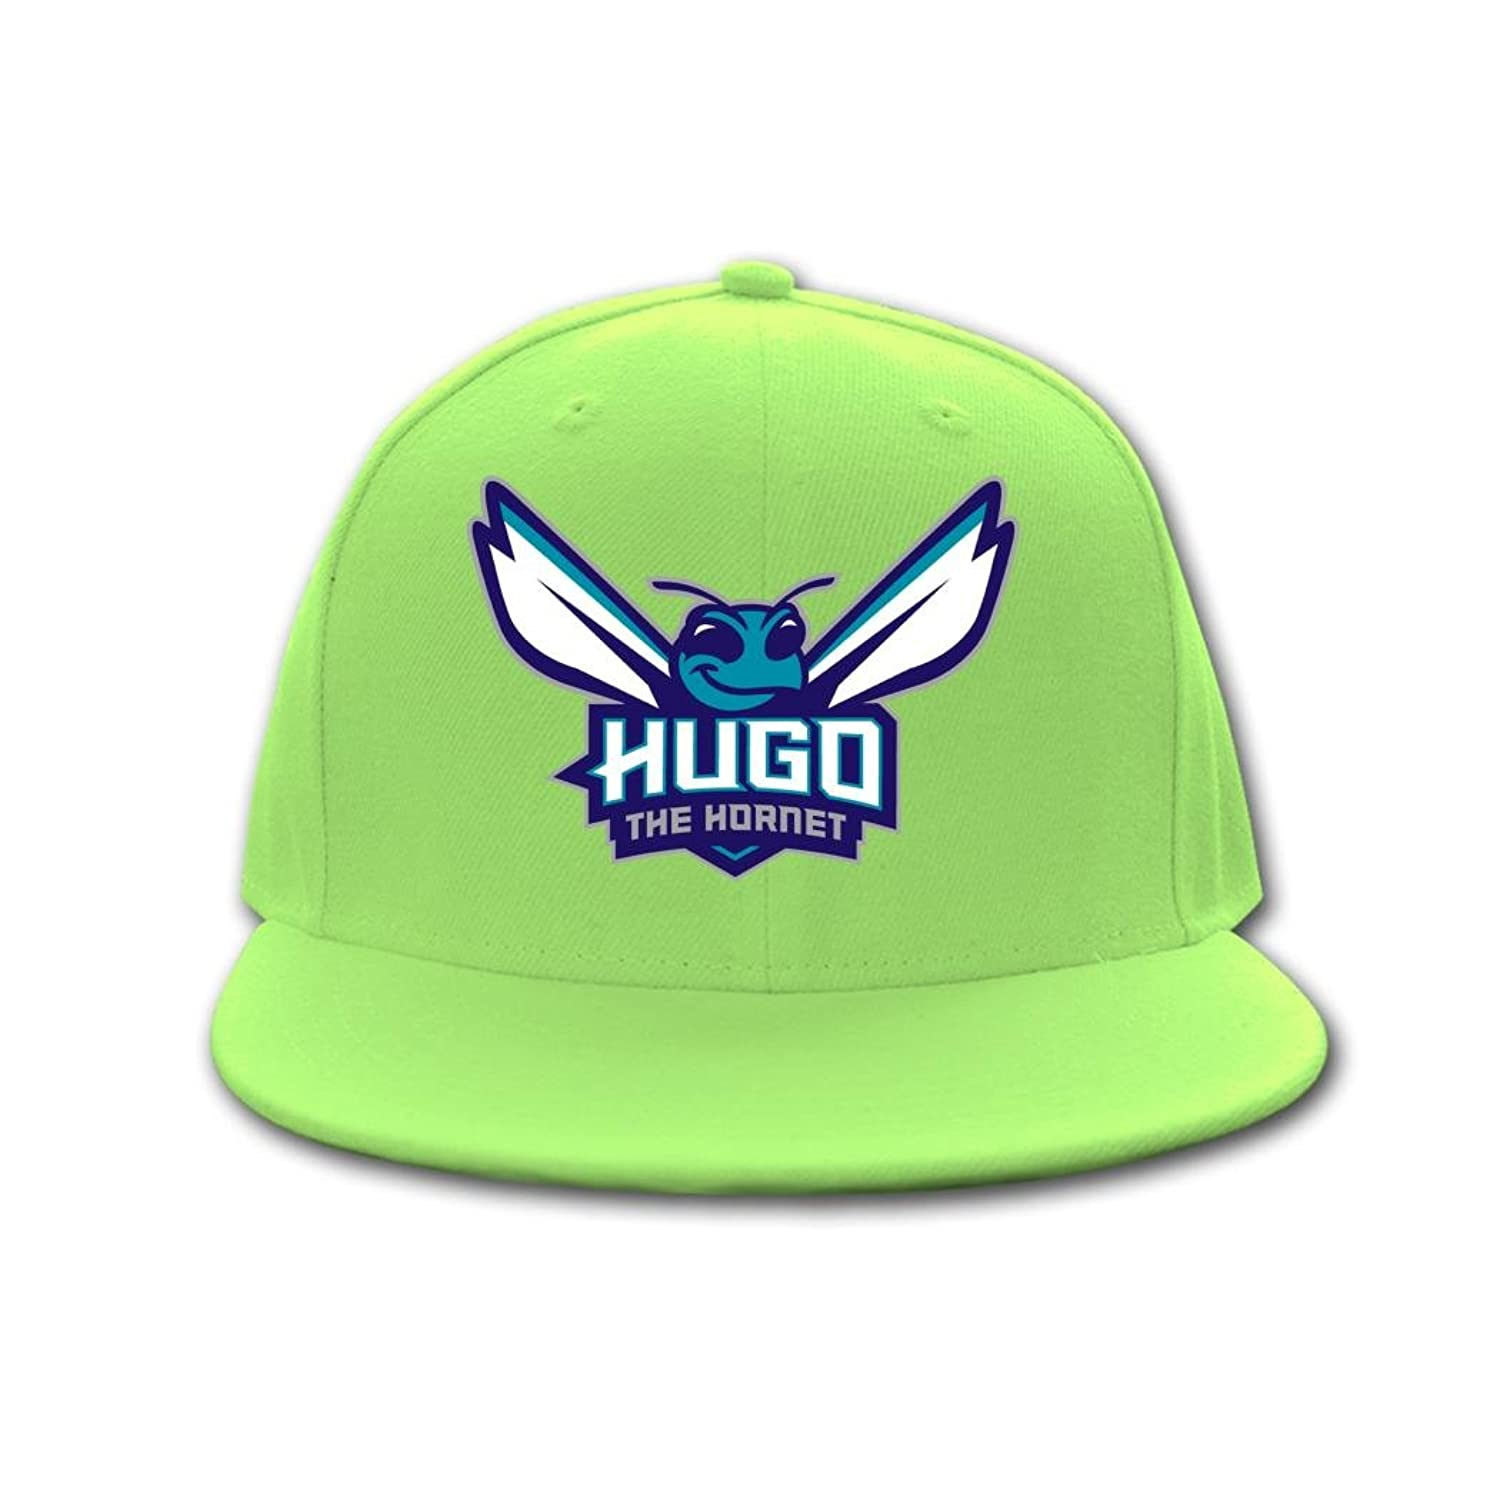 Nice Cotton Men Women Sun Hat NBA Charlotte Hornets 2016 Logo Adjustable Cute Hip-hop Cap